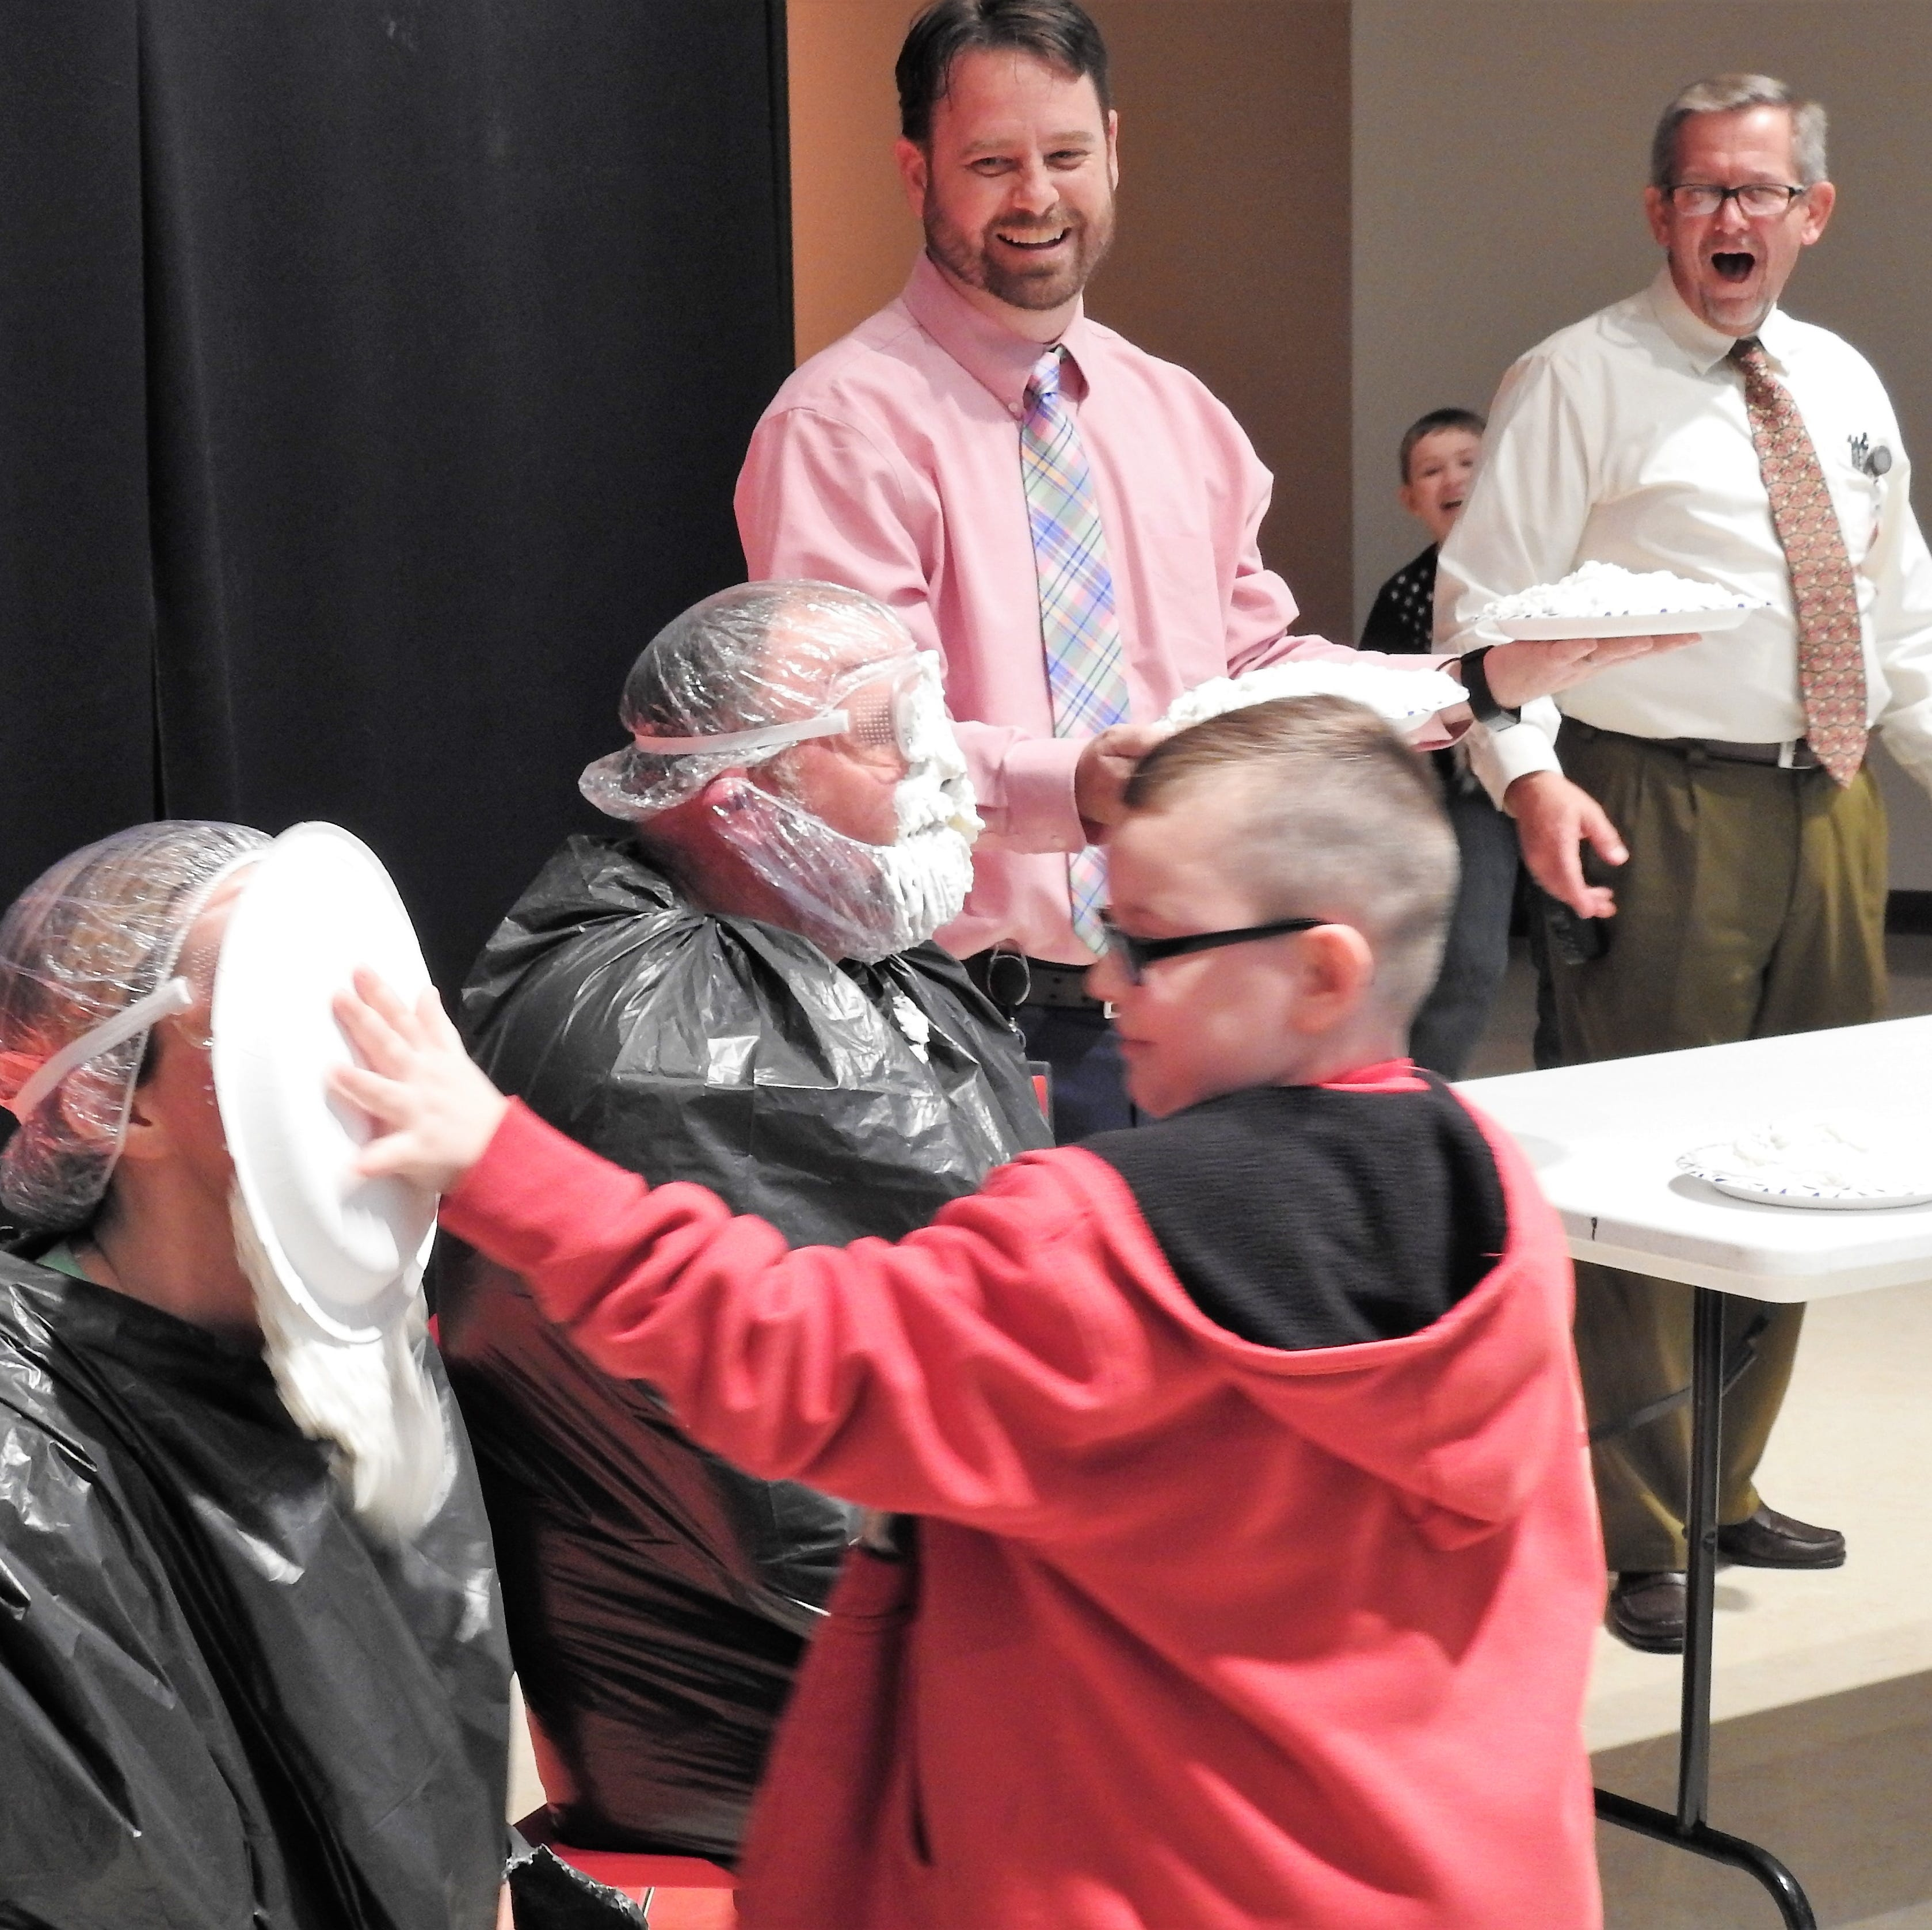 Socktober drive ends with pie pulverizing